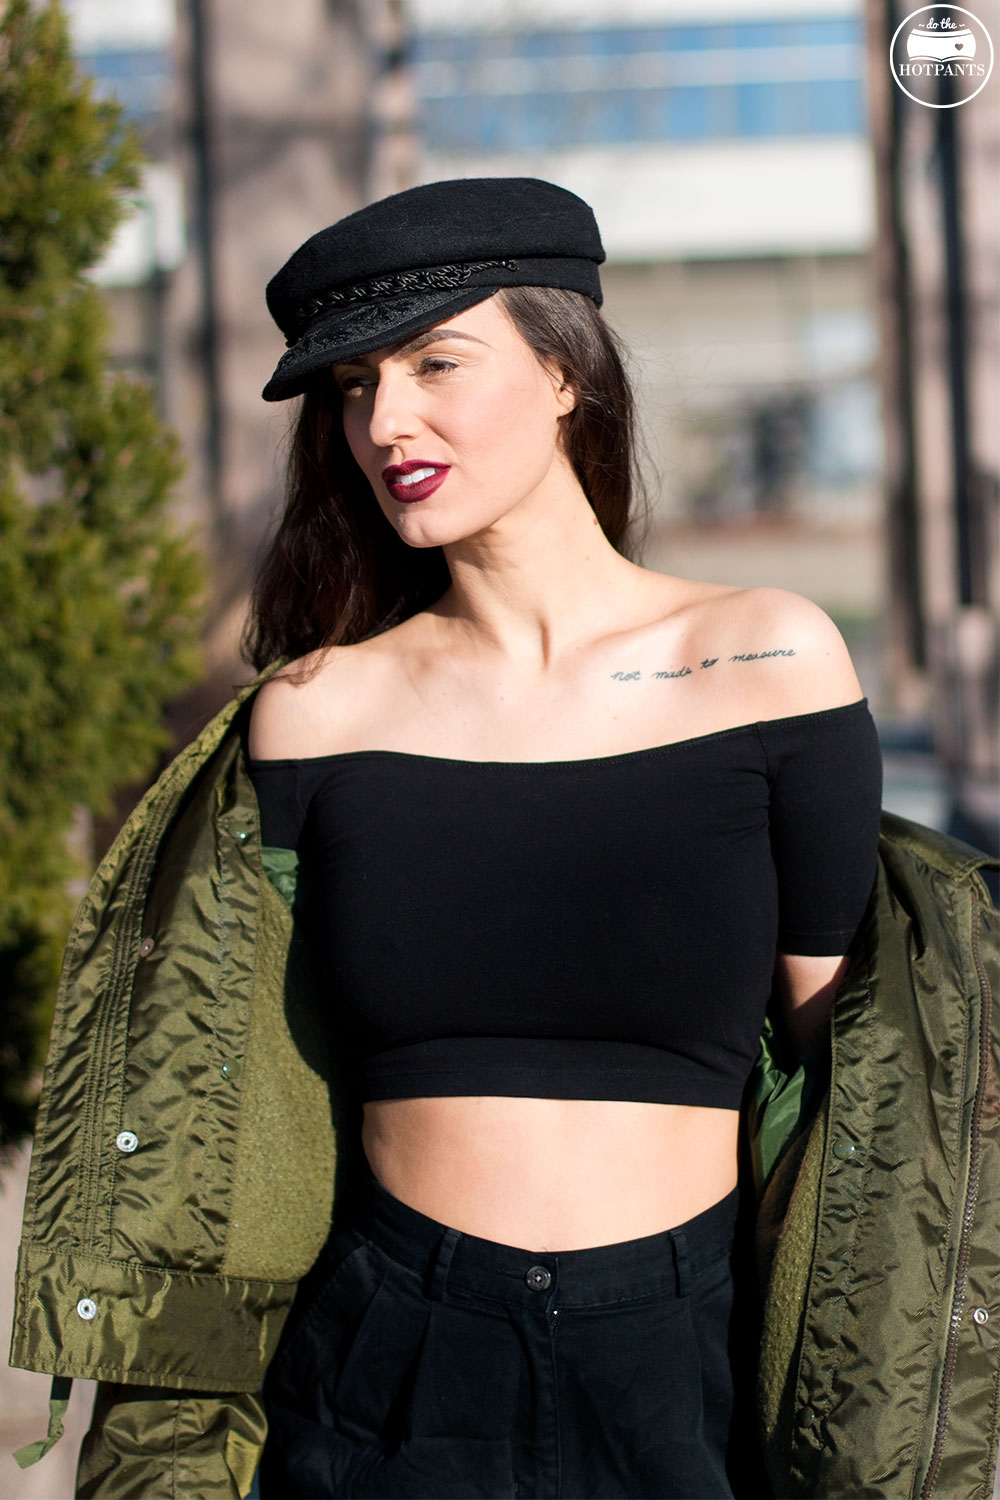 Do The Hotpants Dana Suchow Bomber Jacket Crop Top Thigh Highs Curvy Woman NYC Fashion IMG_8245